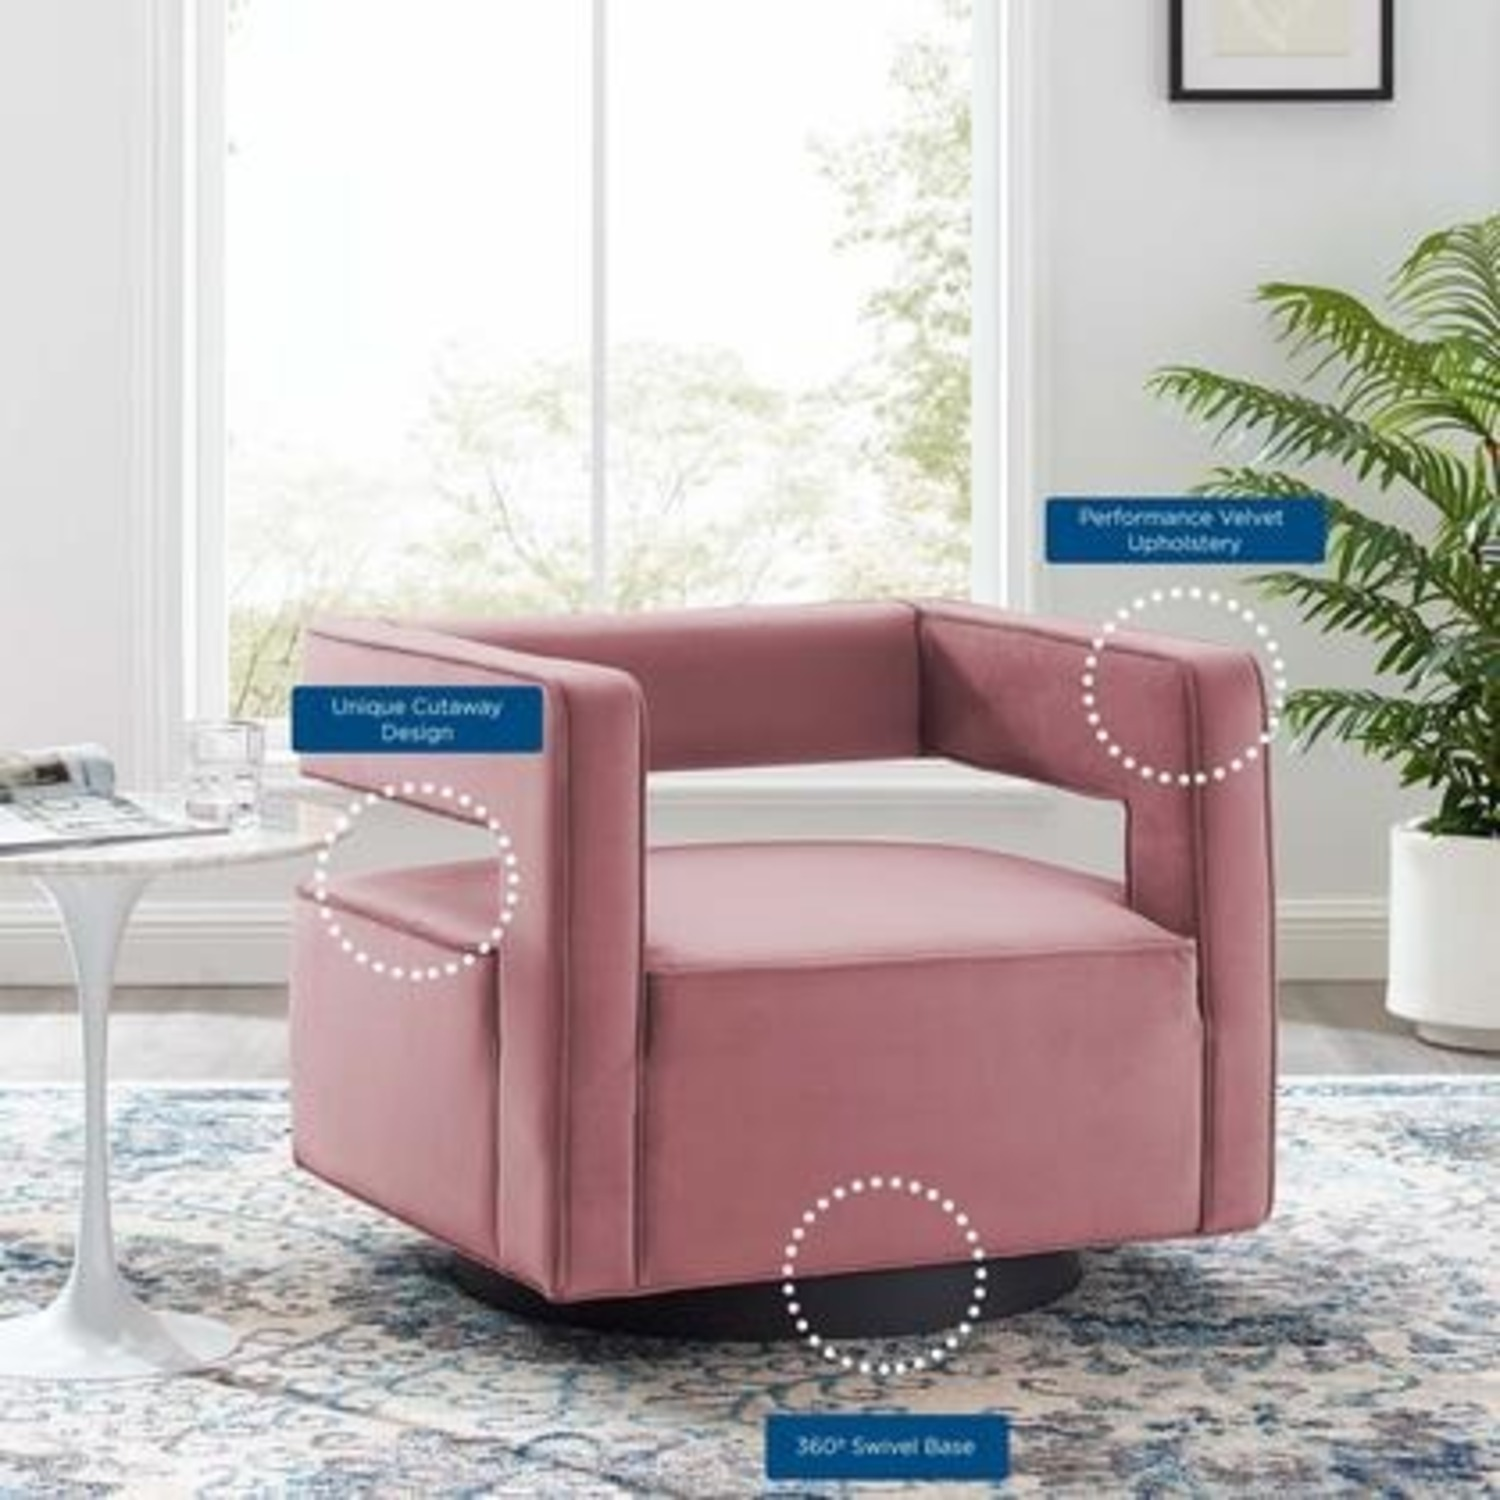 Armchair In Dusty Rose W/ Squared Cutaway Back - image-5